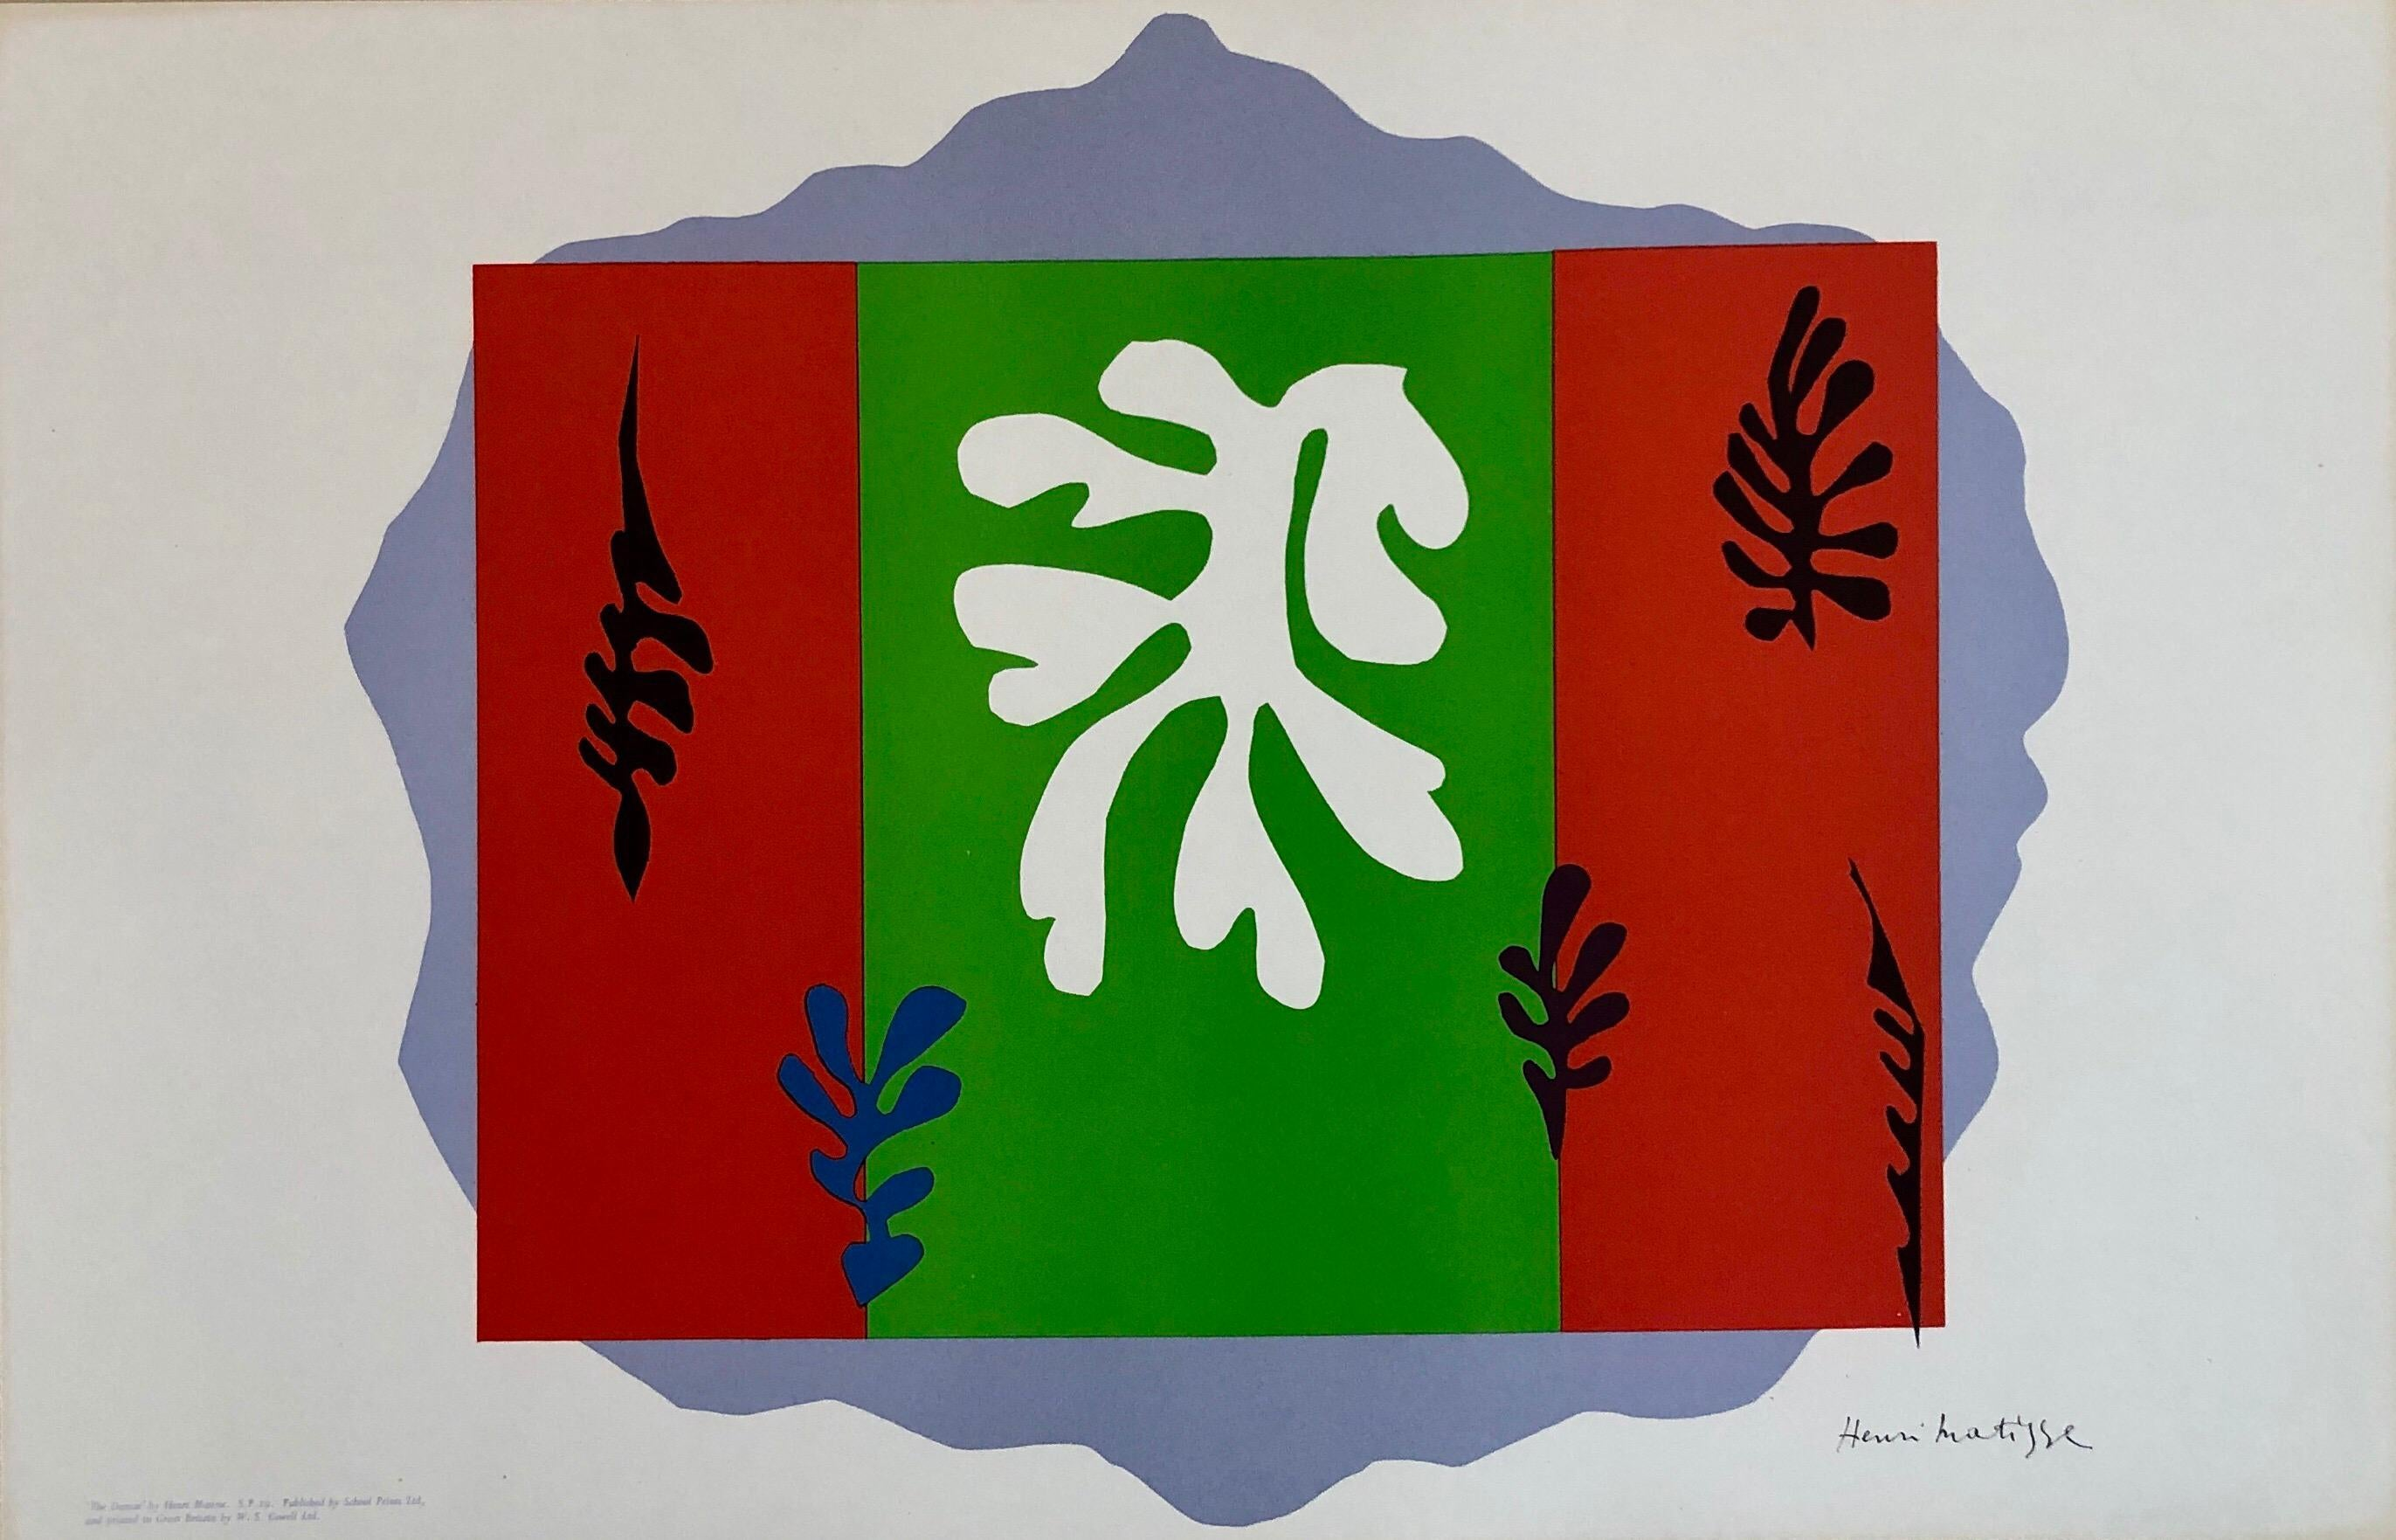 Henri Matisse School Prints Colorful Modernist Cut Out Jazz Drawing Lithograph